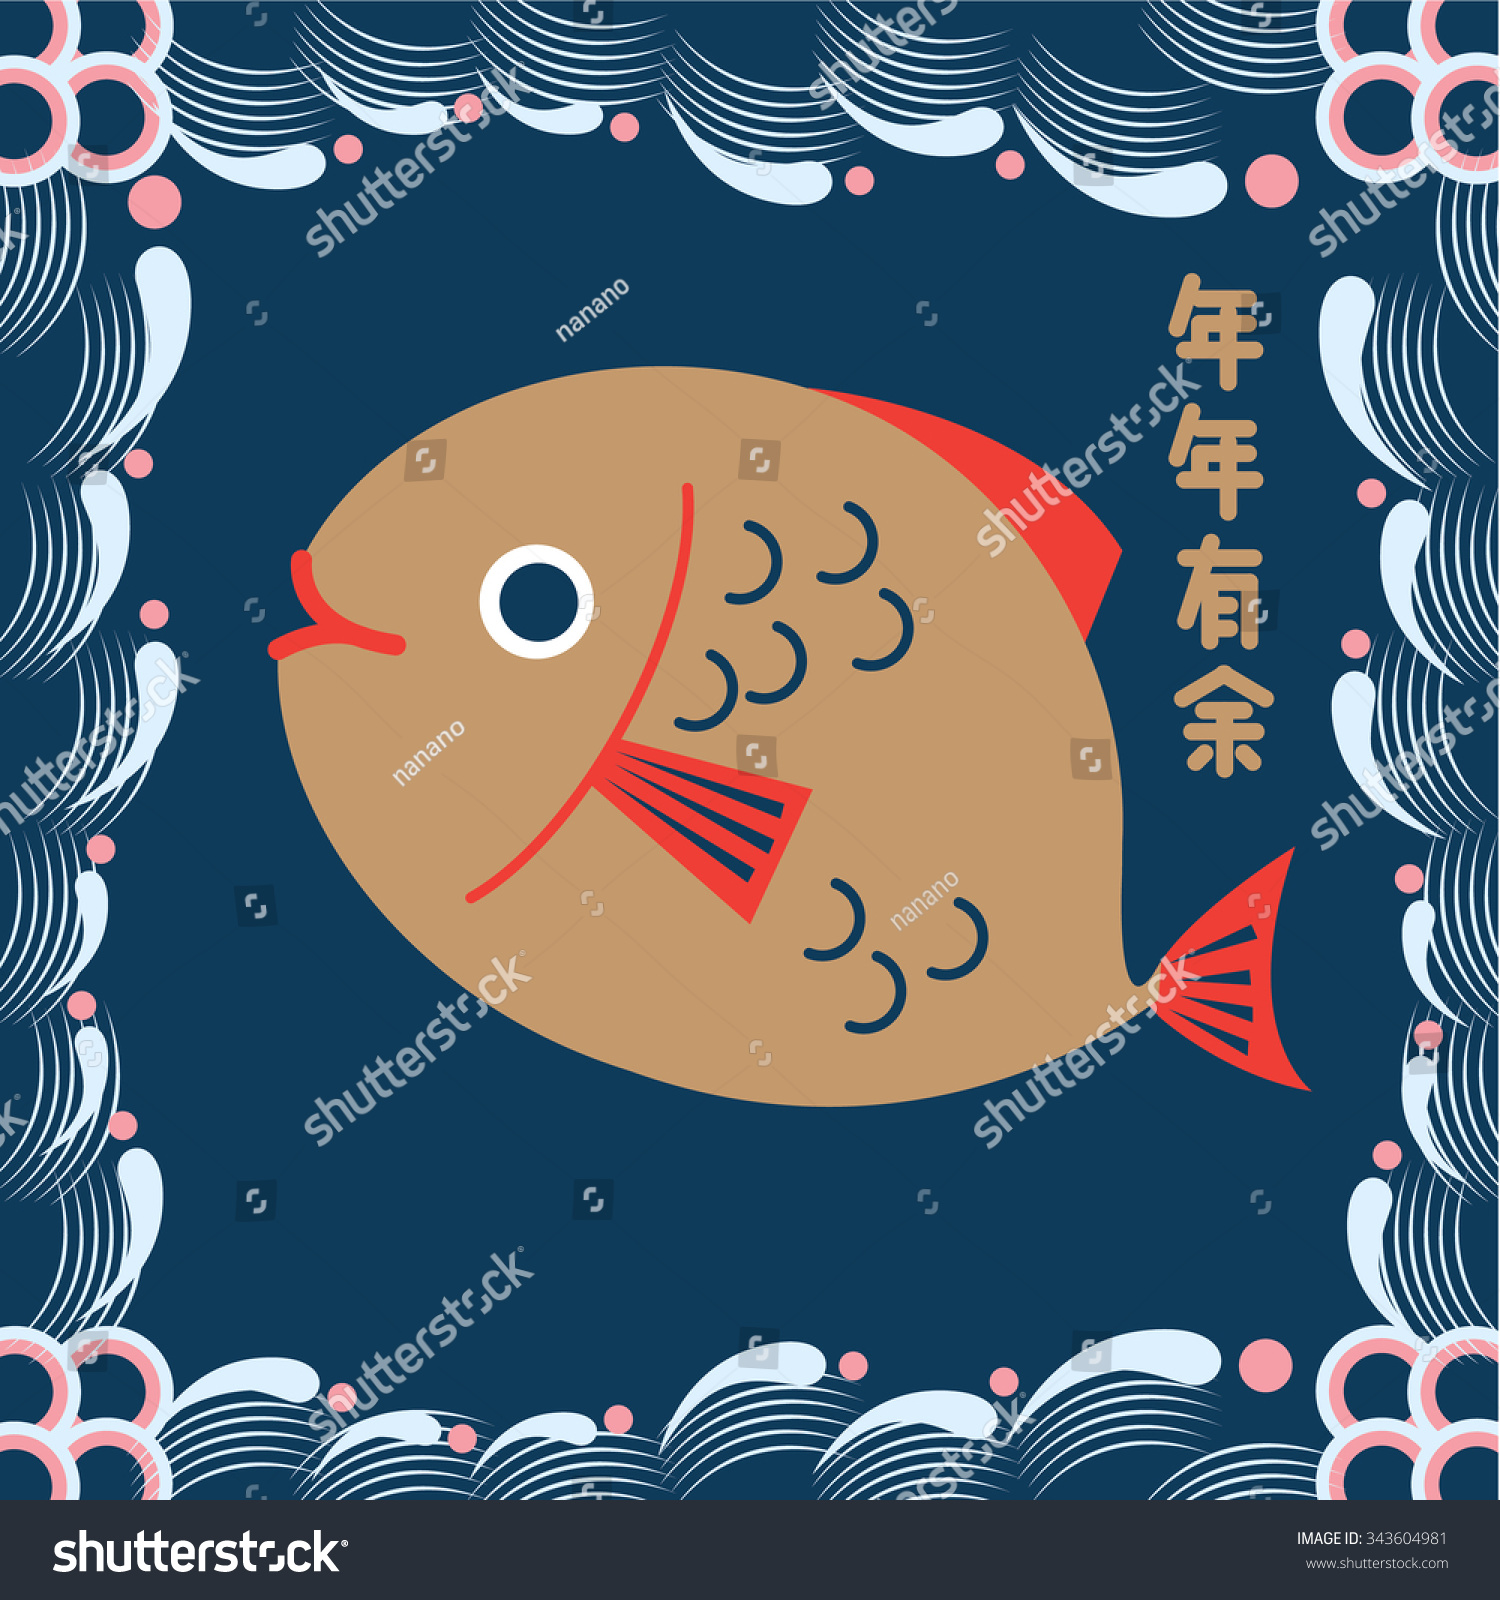 happy chinese new year 2016 greetings vector design translation wishing you a prosperous new